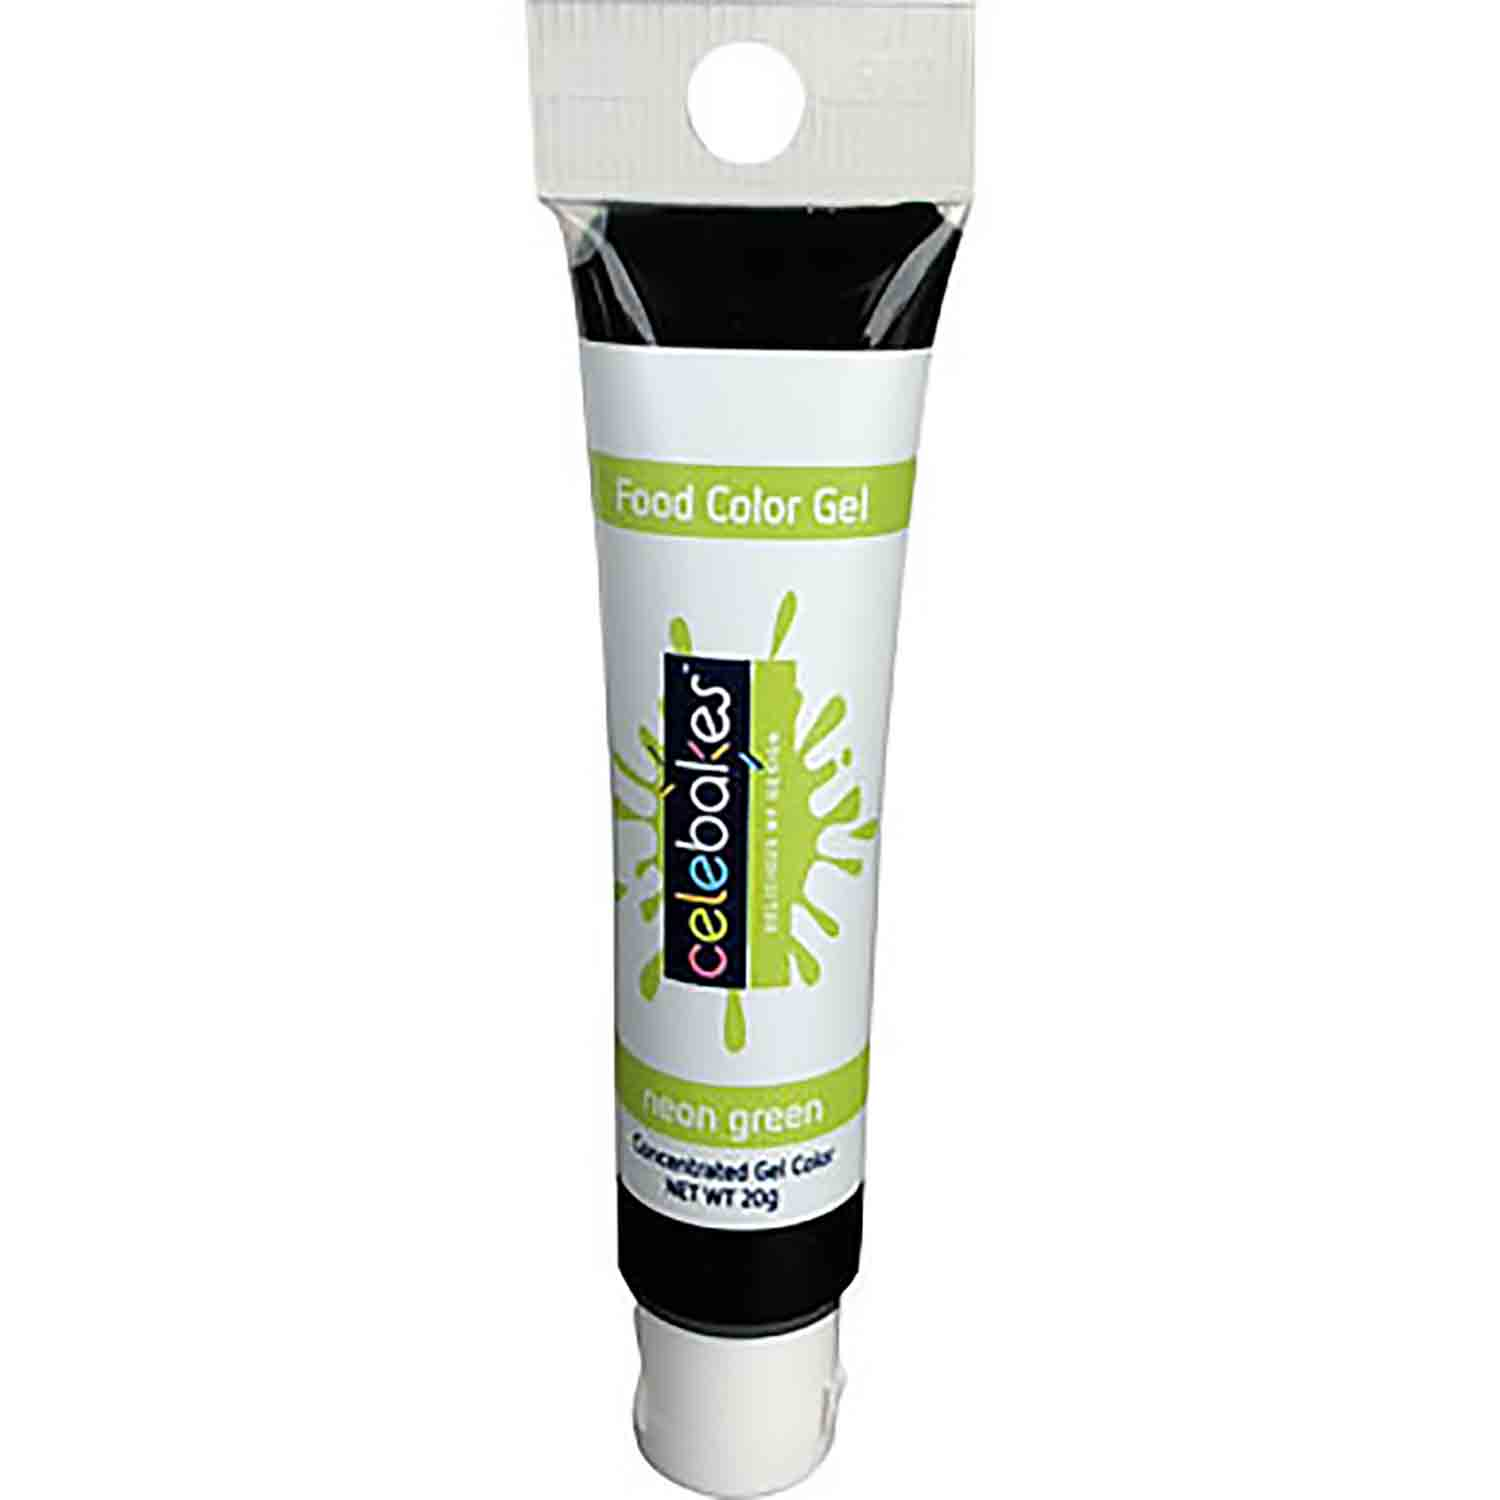 Neon Green Celebakes™ Food Color Gel